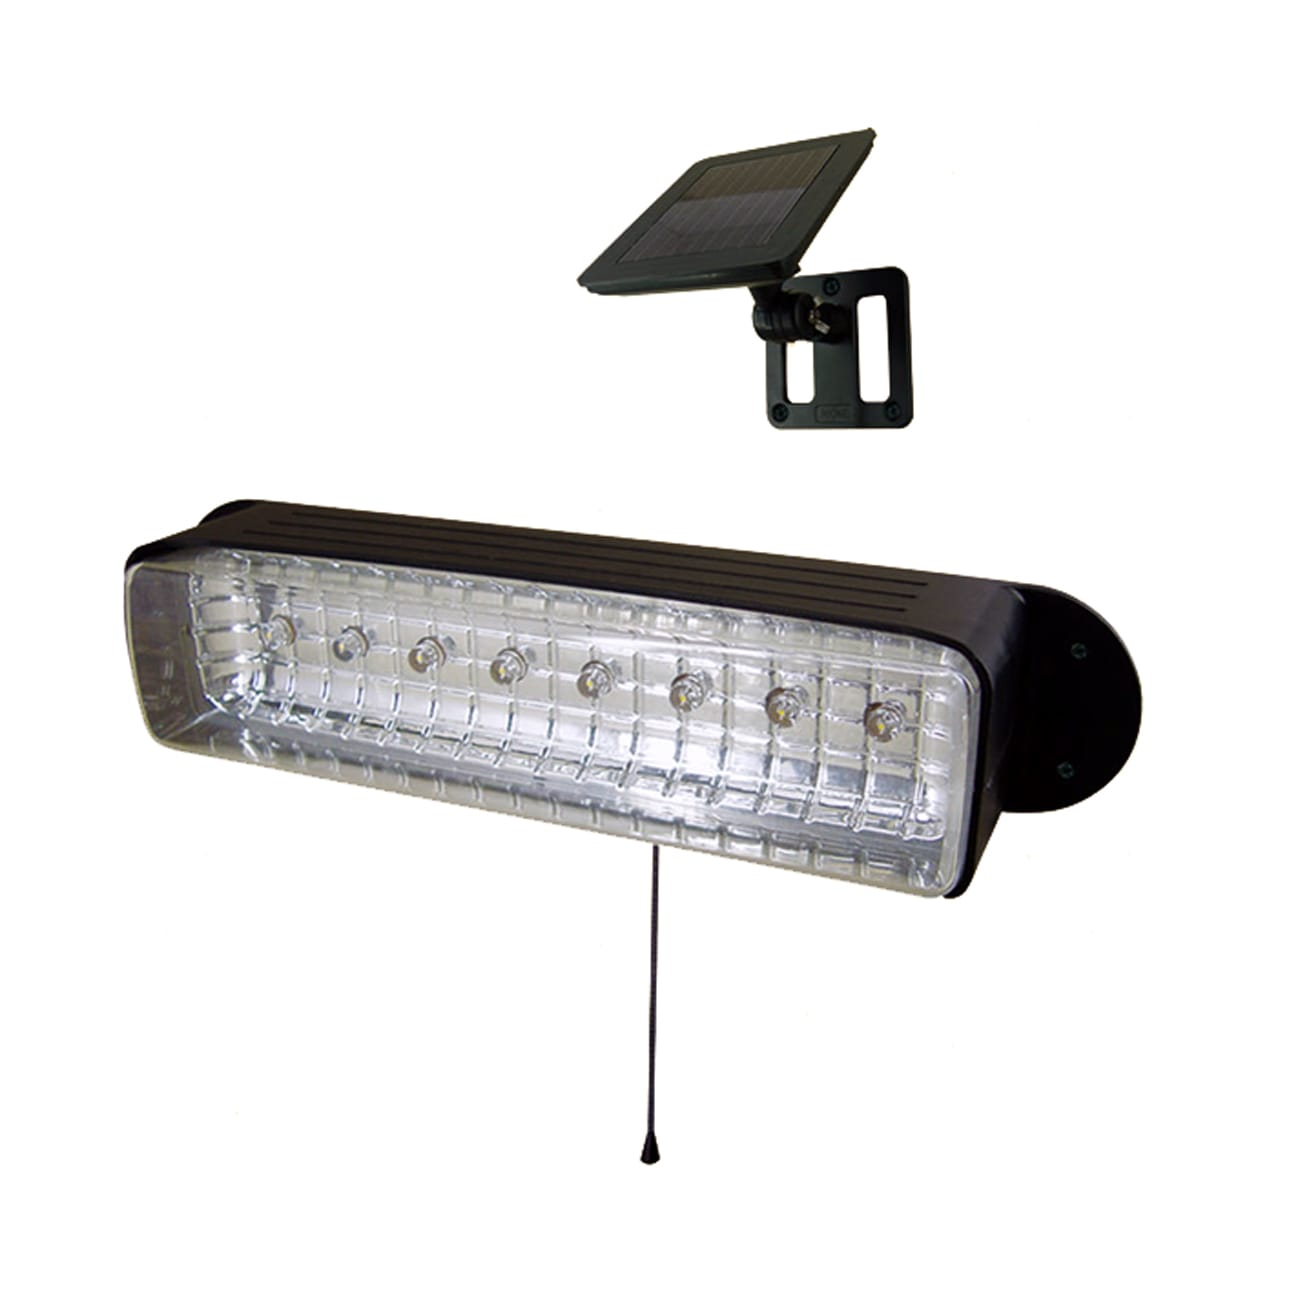 Solar Powered Wall Garage Shed Light 8-LED